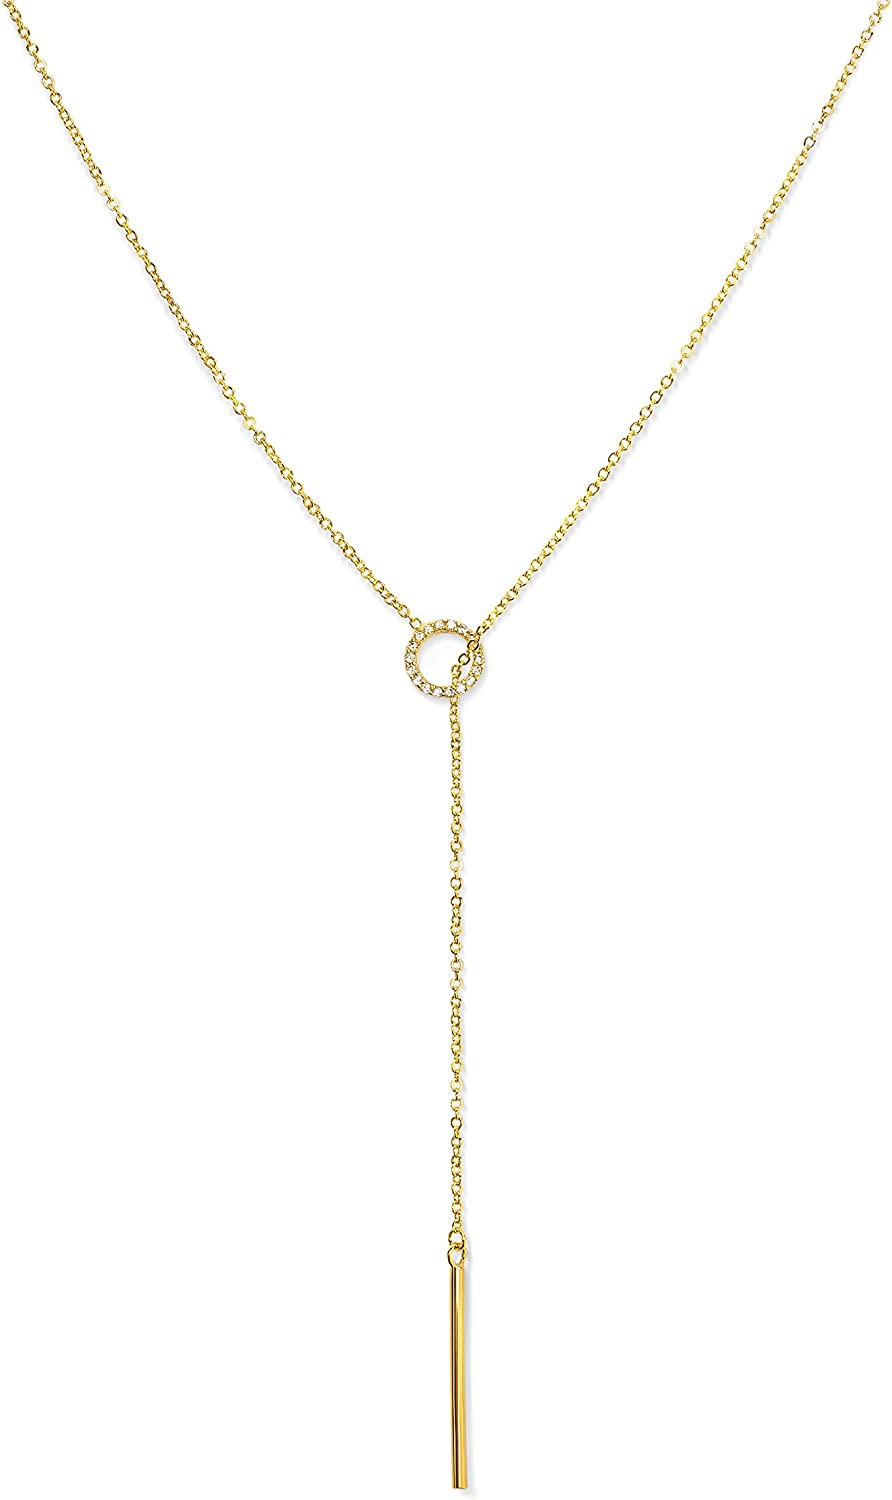 14k Gold California Pendant with 14k Gold Chain